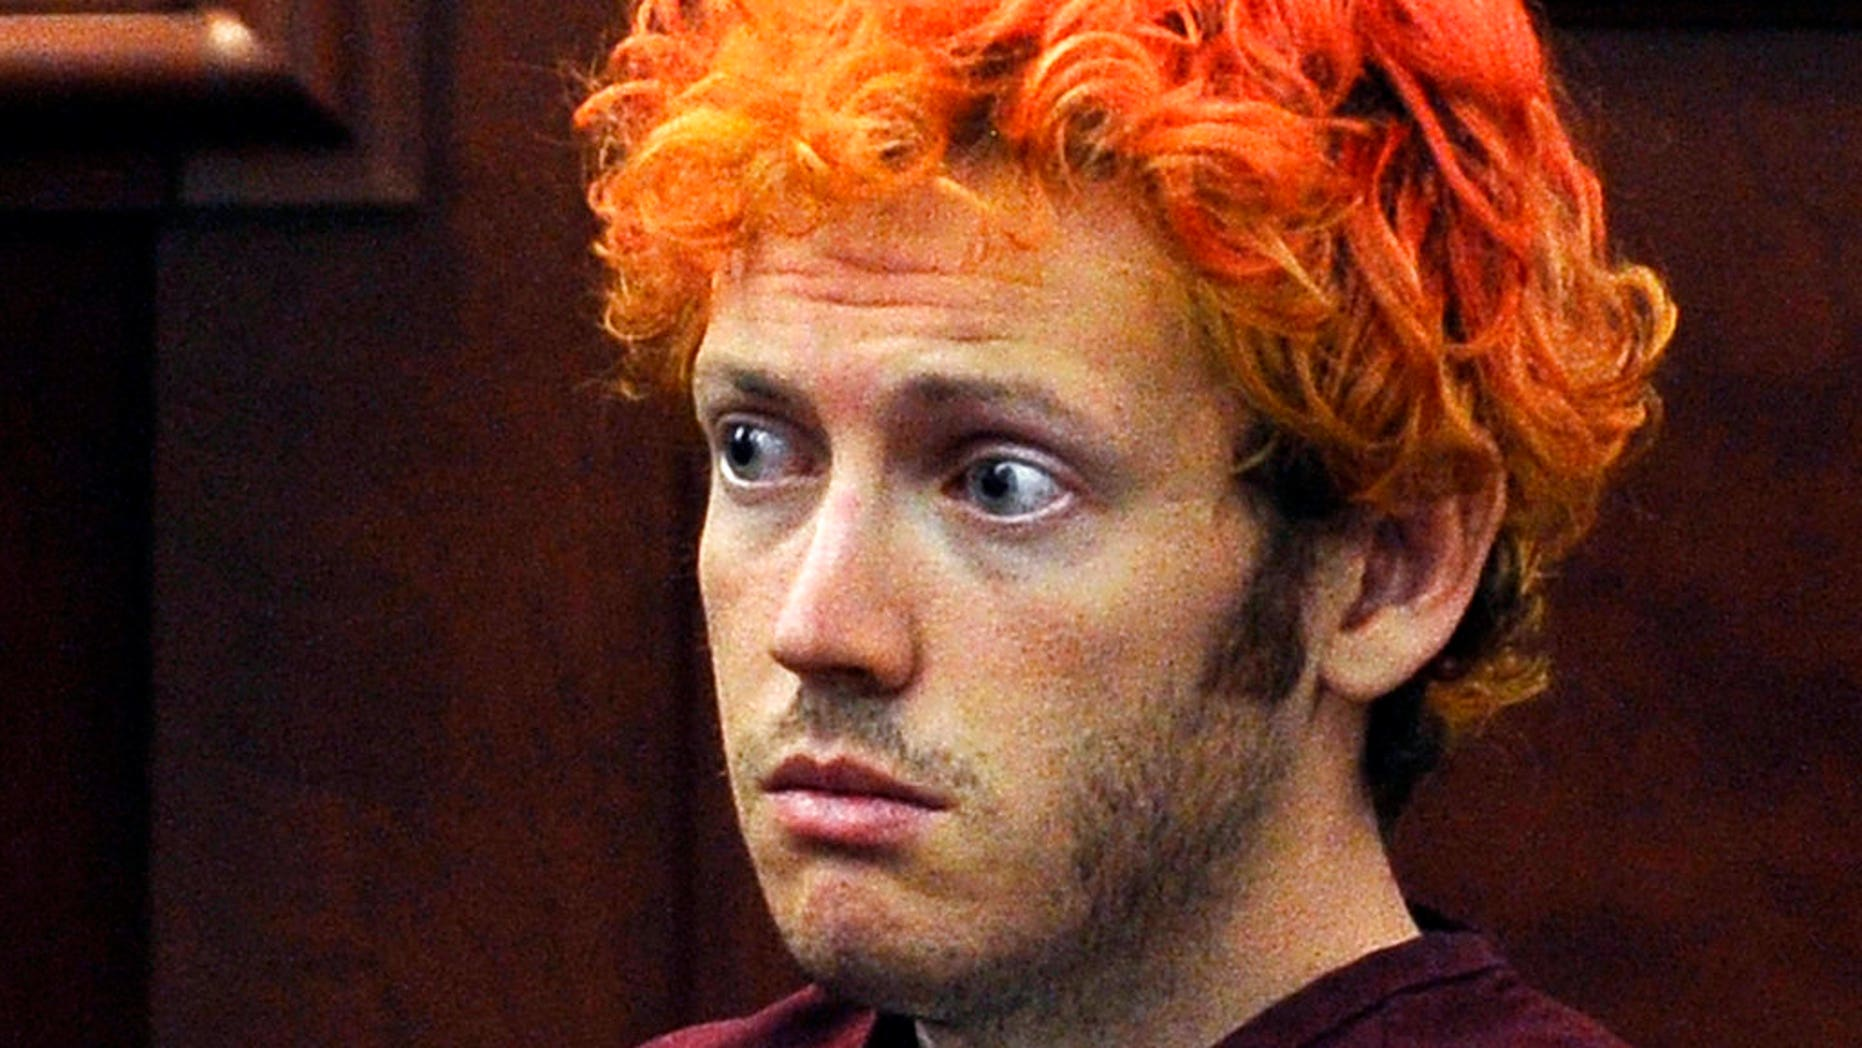 "James Holmes, the man who killed 12 people and wounded 58 others when he opened fire at a movie theater in Aurora, Colorado, in 2012, did what he did due to a range of factors ""in an unimaginably detailed and complex confluence,"" a psychiatrist who interviewed Holmes said in a new book."